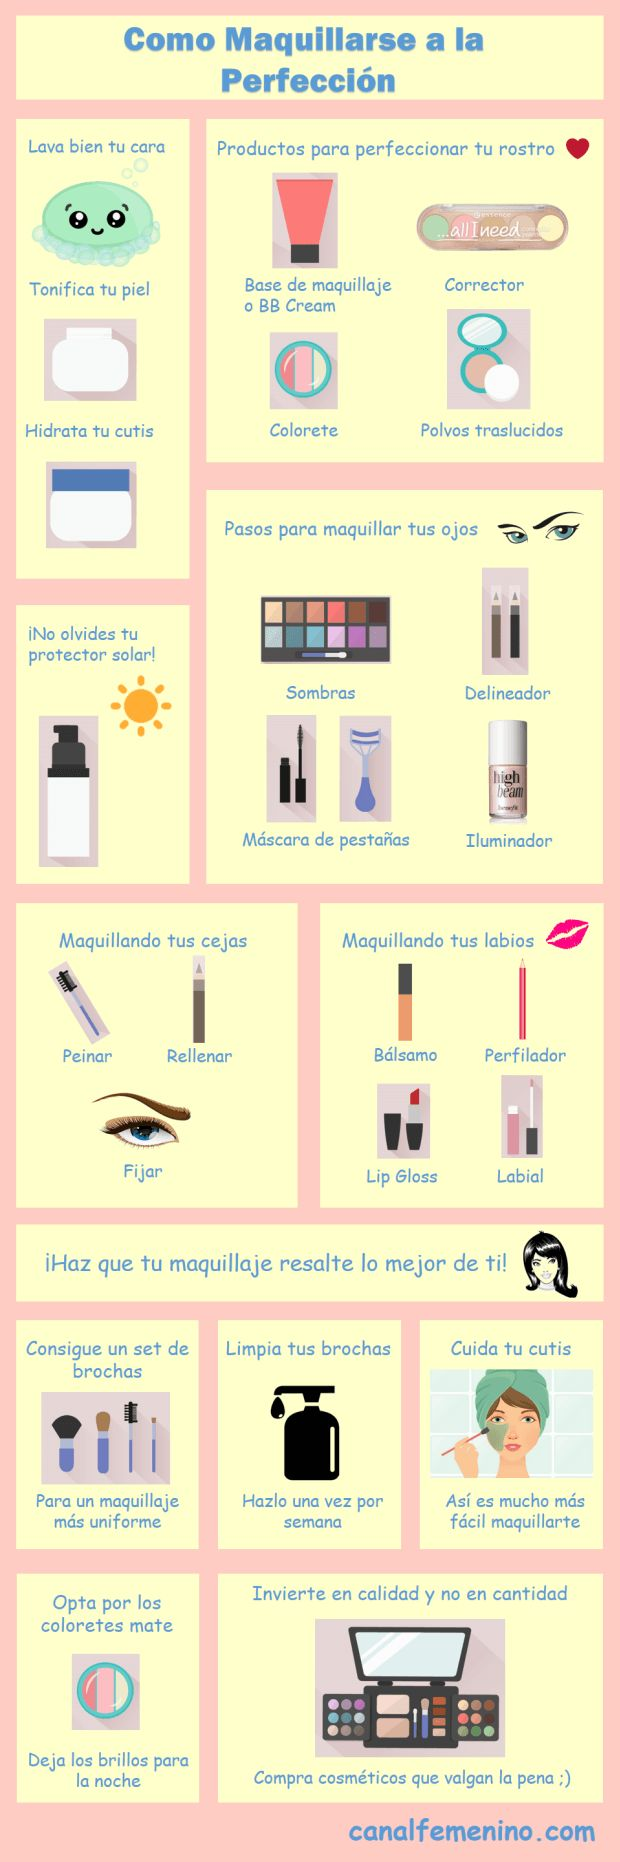 22 best paso a paso maquillaje images on pinterest - Como maquillarse paso a paso ...